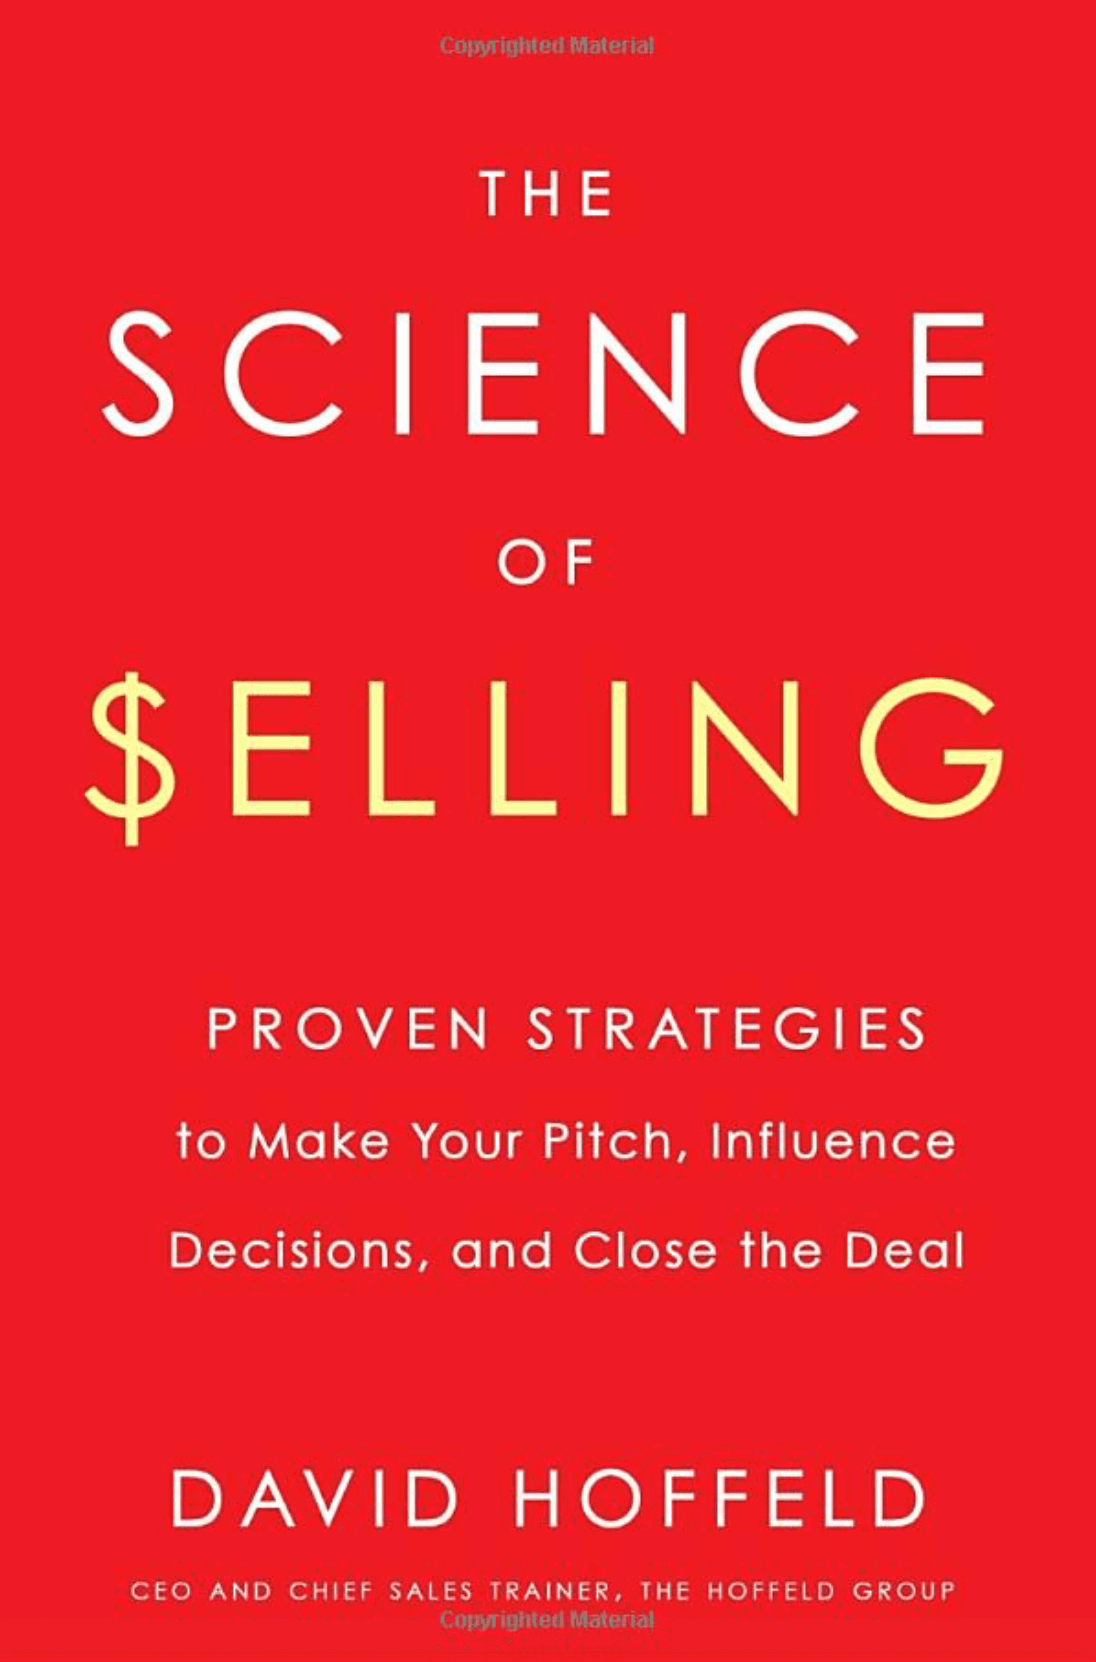 """The Science of Selling: Proven Strategies to Make Your Pitch, Influence Decisions, and Close the Deal""by David Hoffeld_Saleslabel.com"